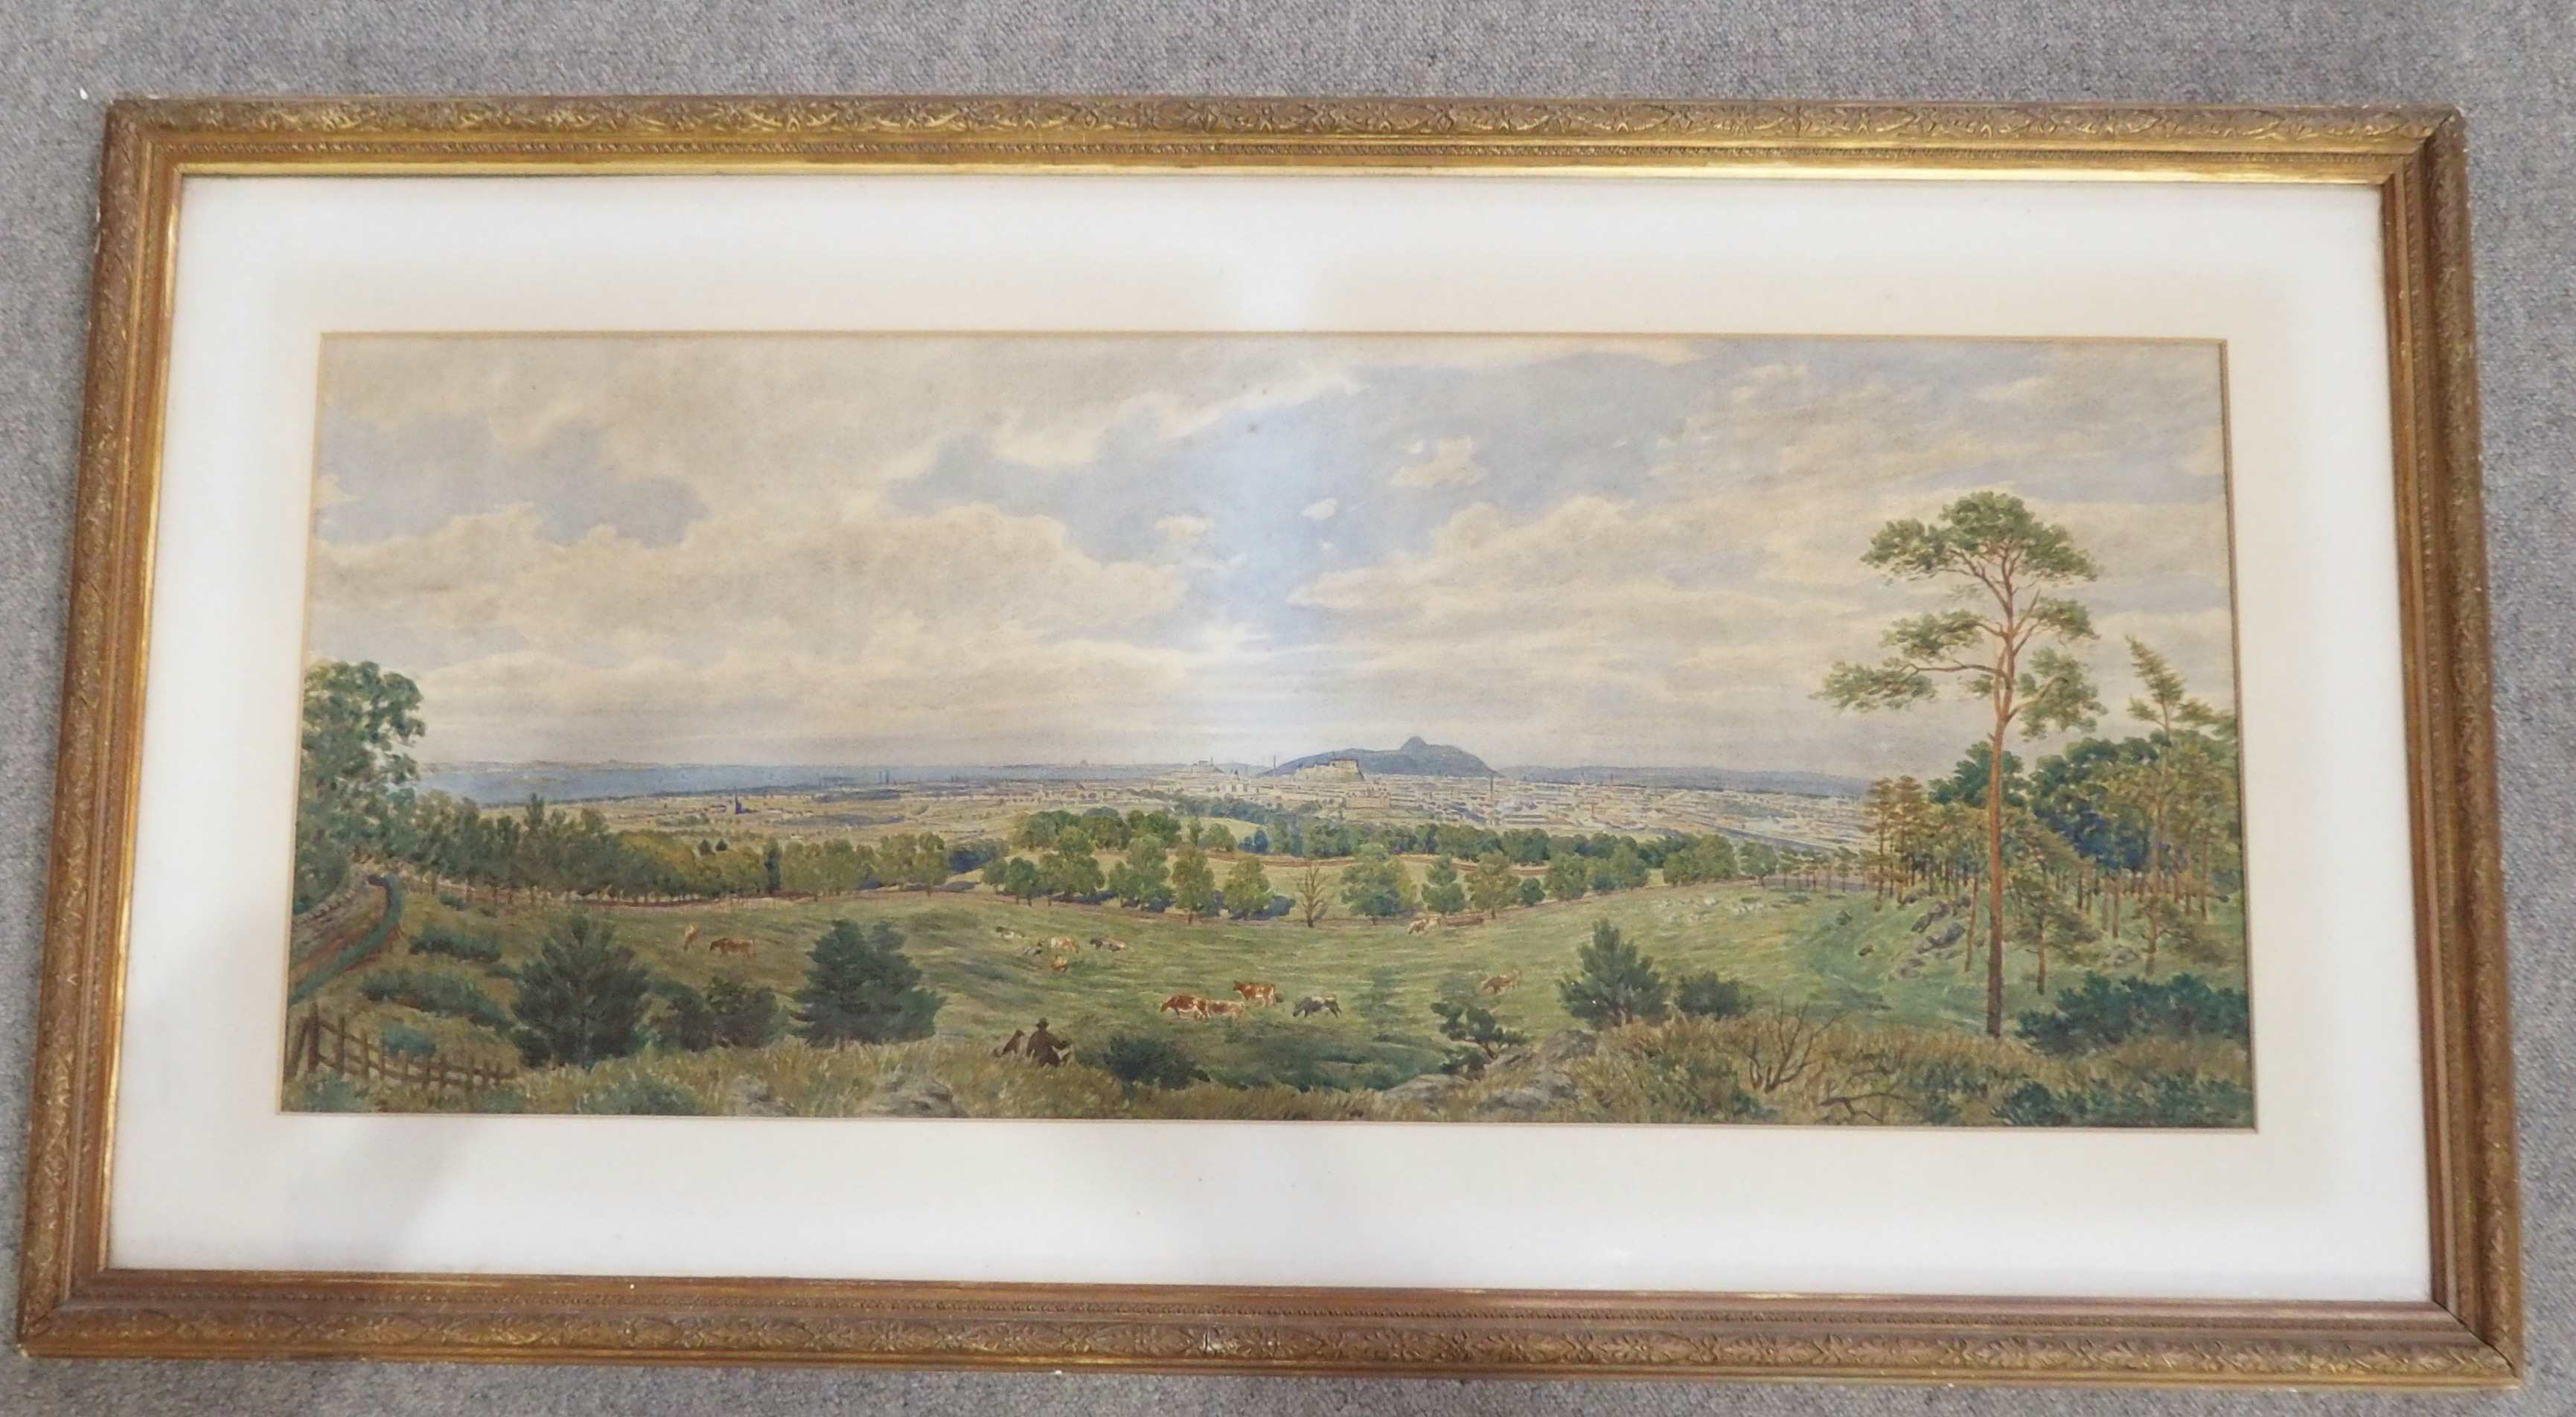 A ARNST (GERMAN 19TH CENTURY) PANORAMIC VIEW OF EDINBURGH Watercolour on paper laid on canvas, - Image 2 of 4